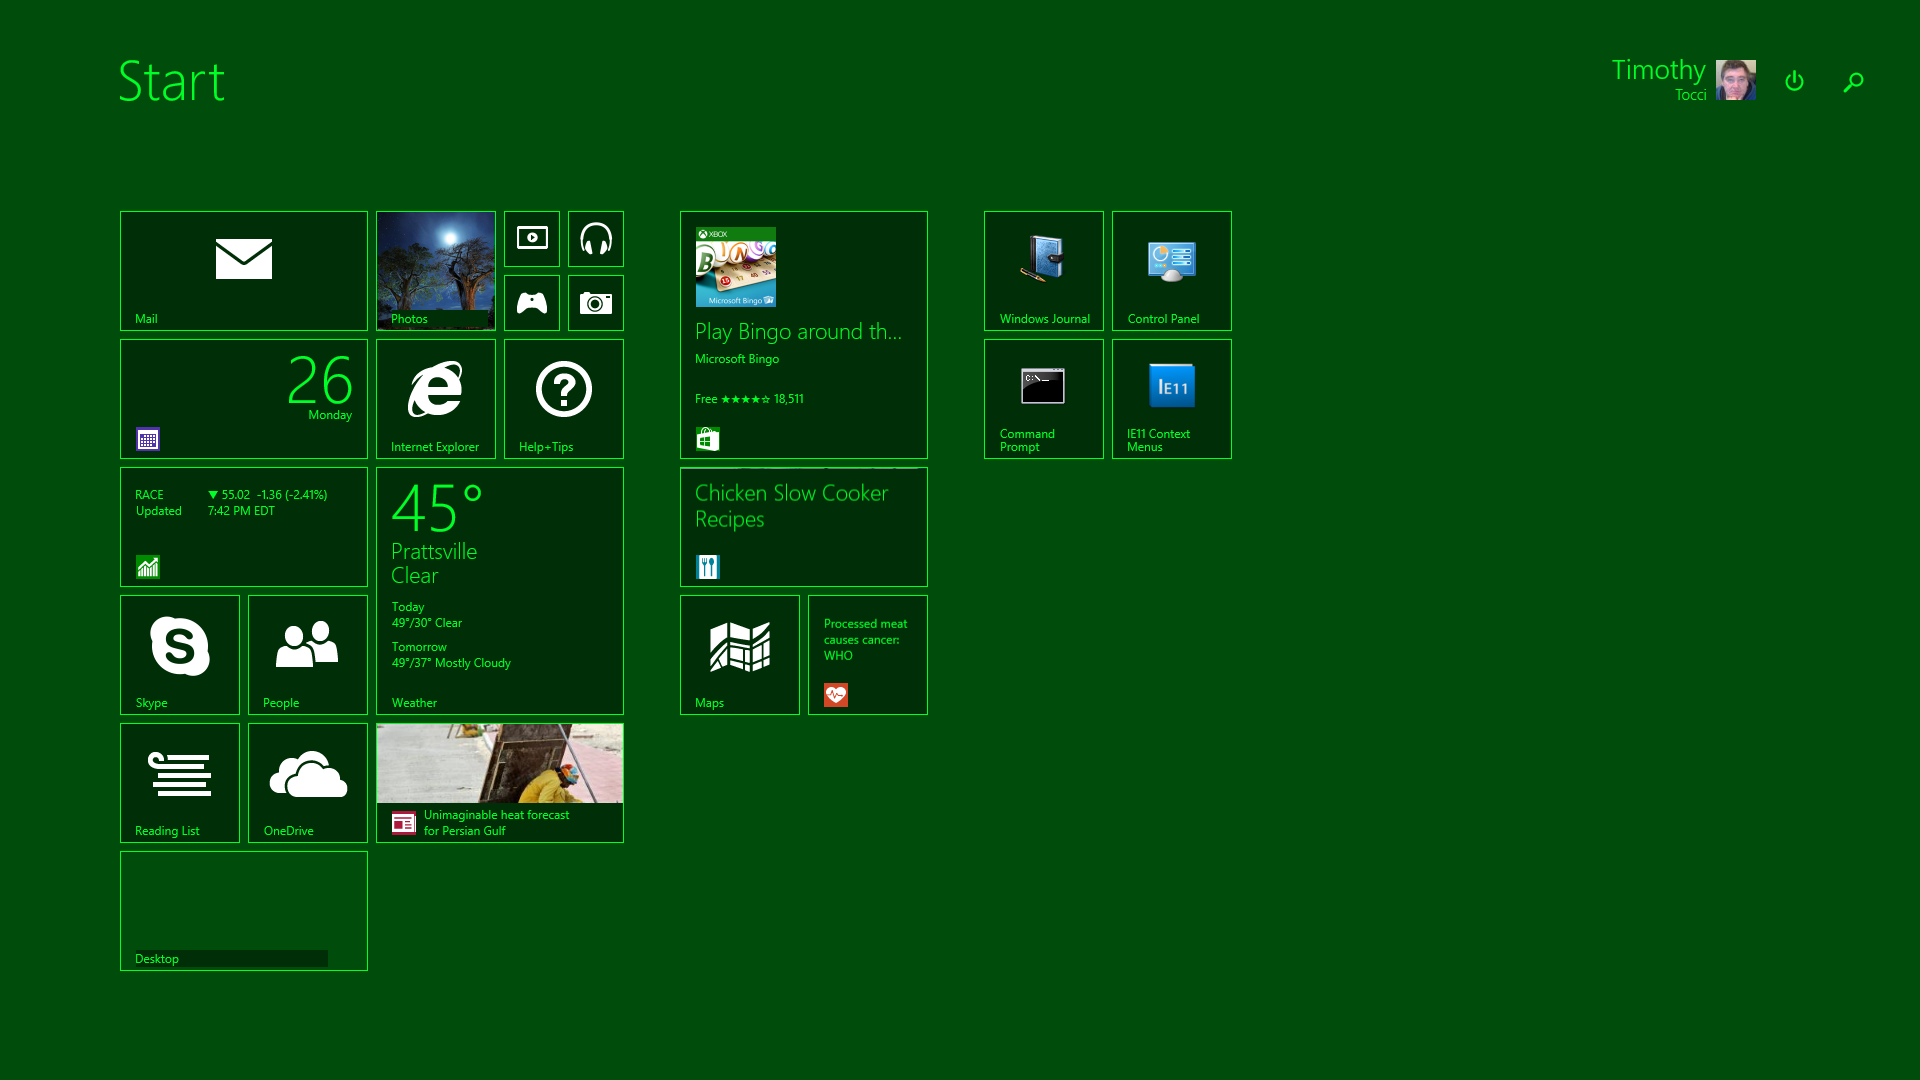 MilSpecGreen Windows 8 Start Screen